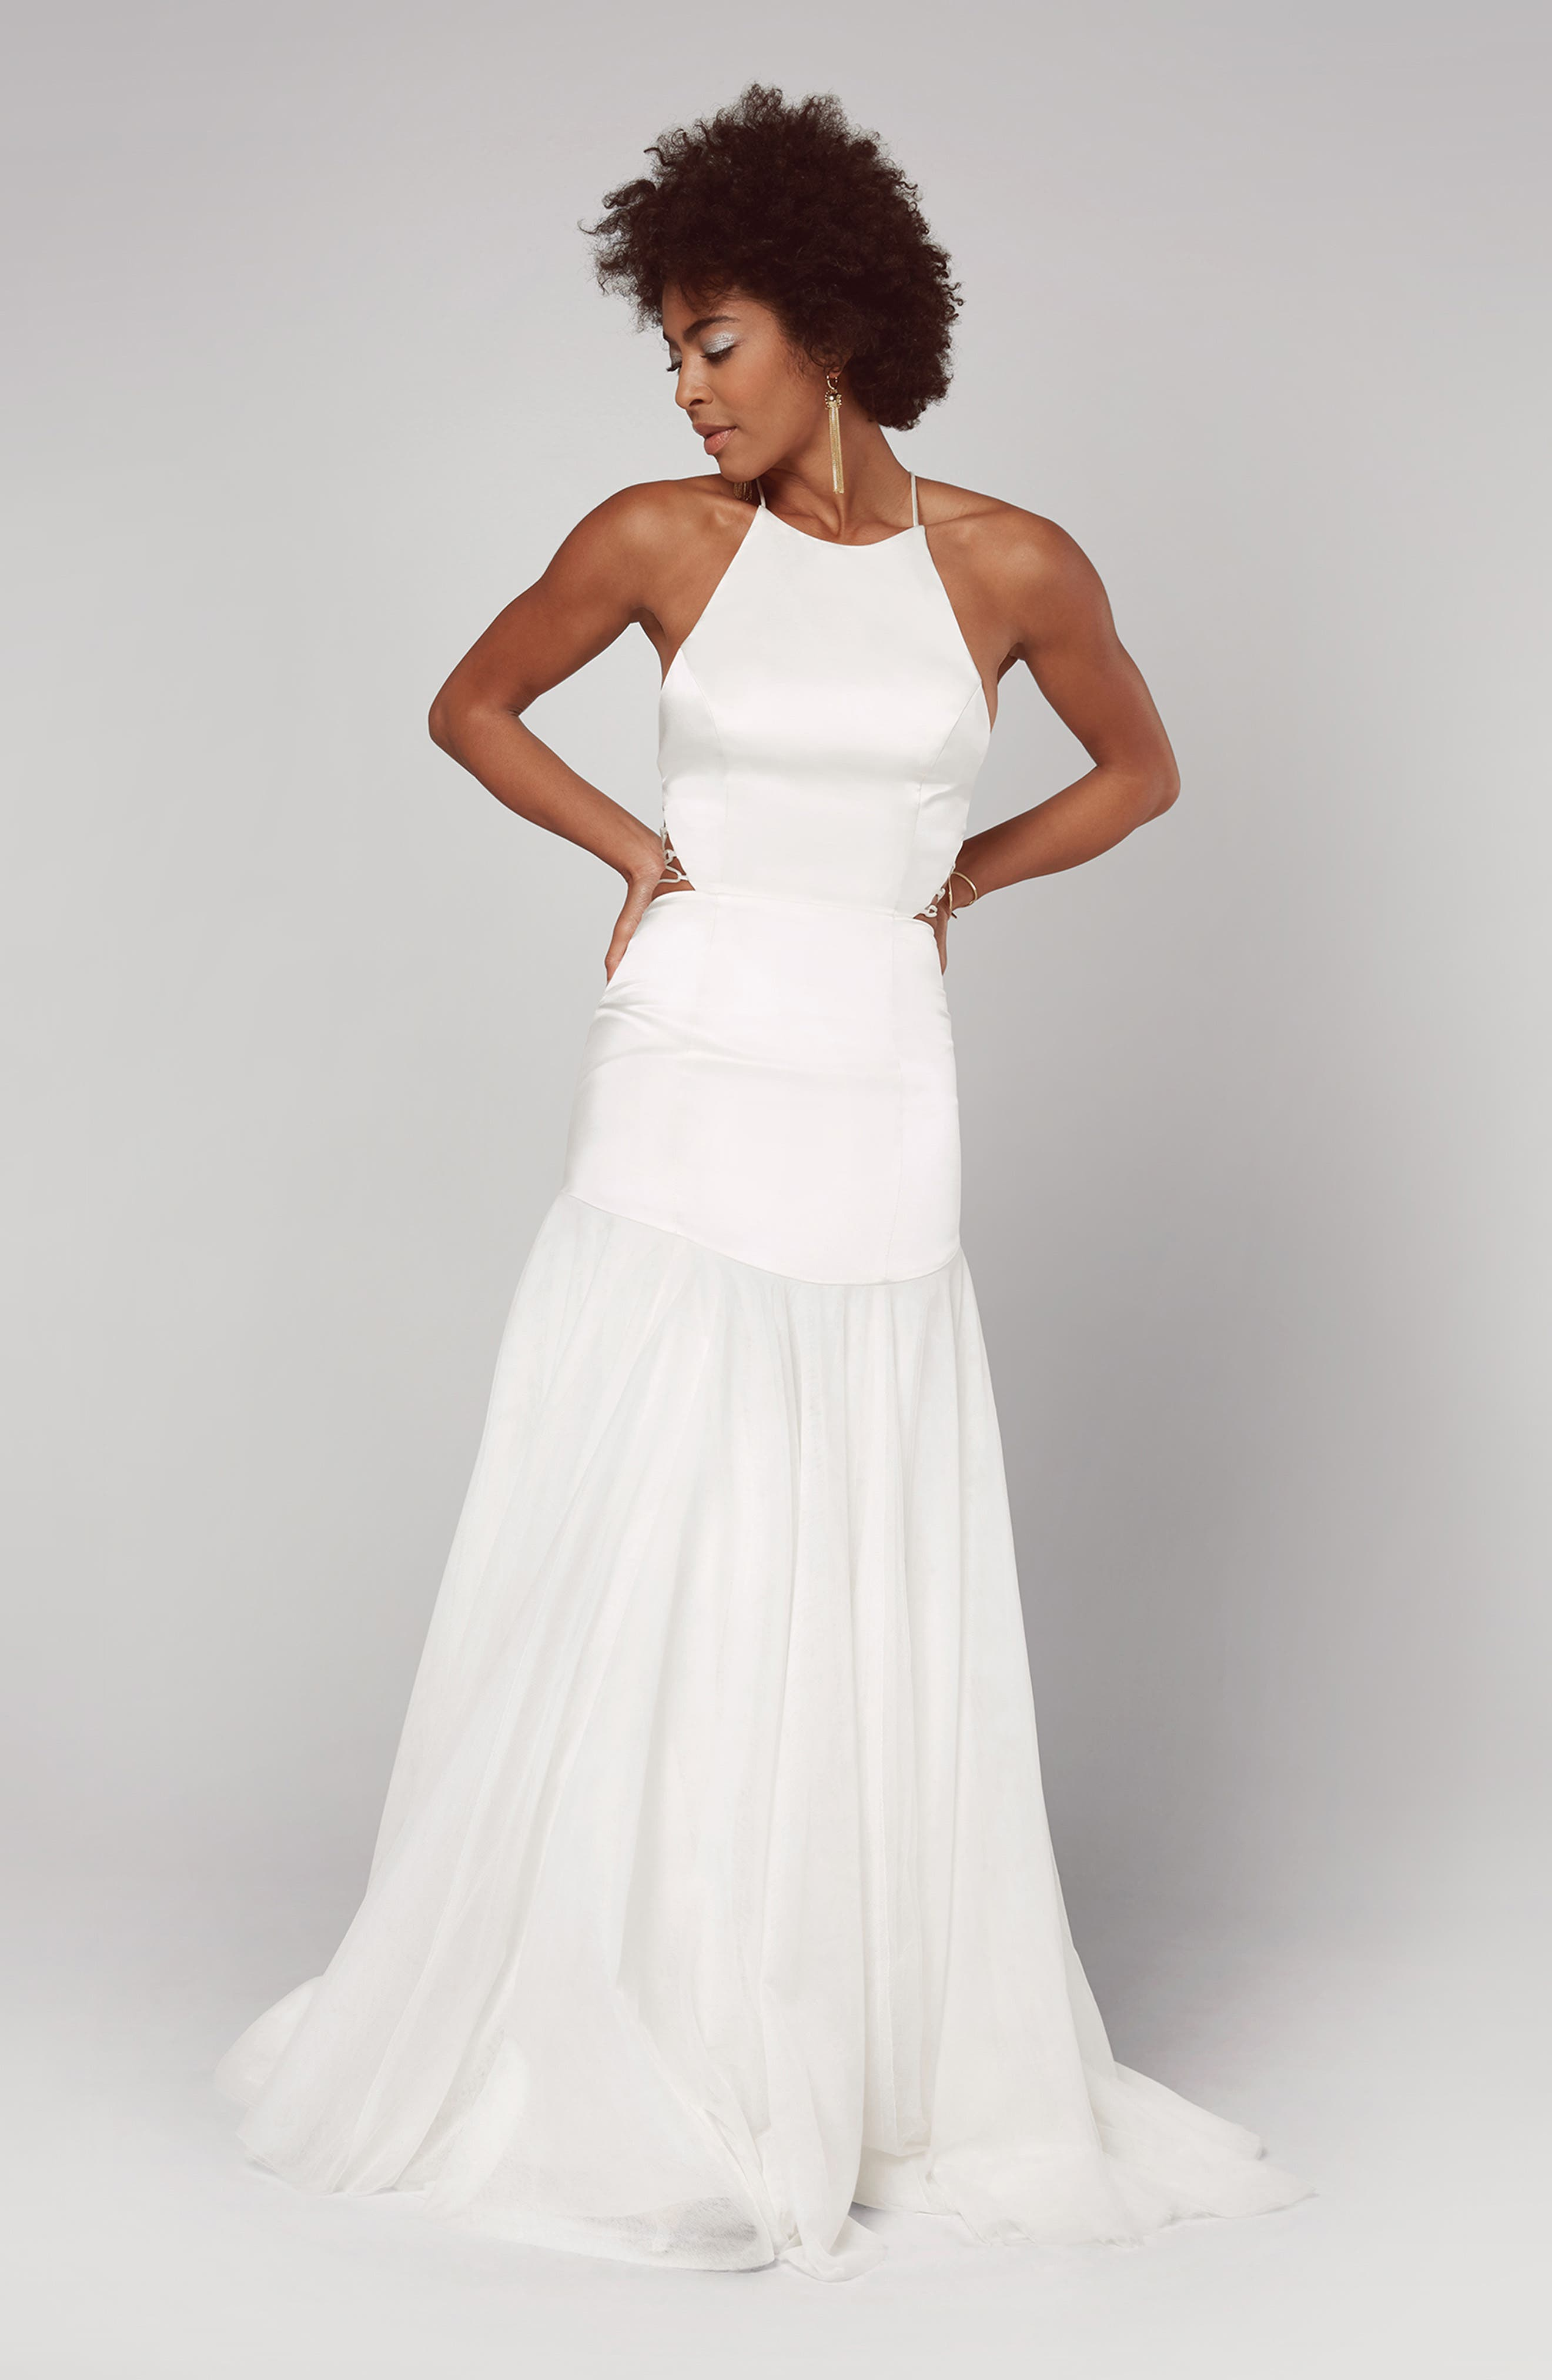 Fame & Partners Alexandrina Strappy Satin & Tulle Mermaid Gown, 8 (similar to 16W-18W) - White